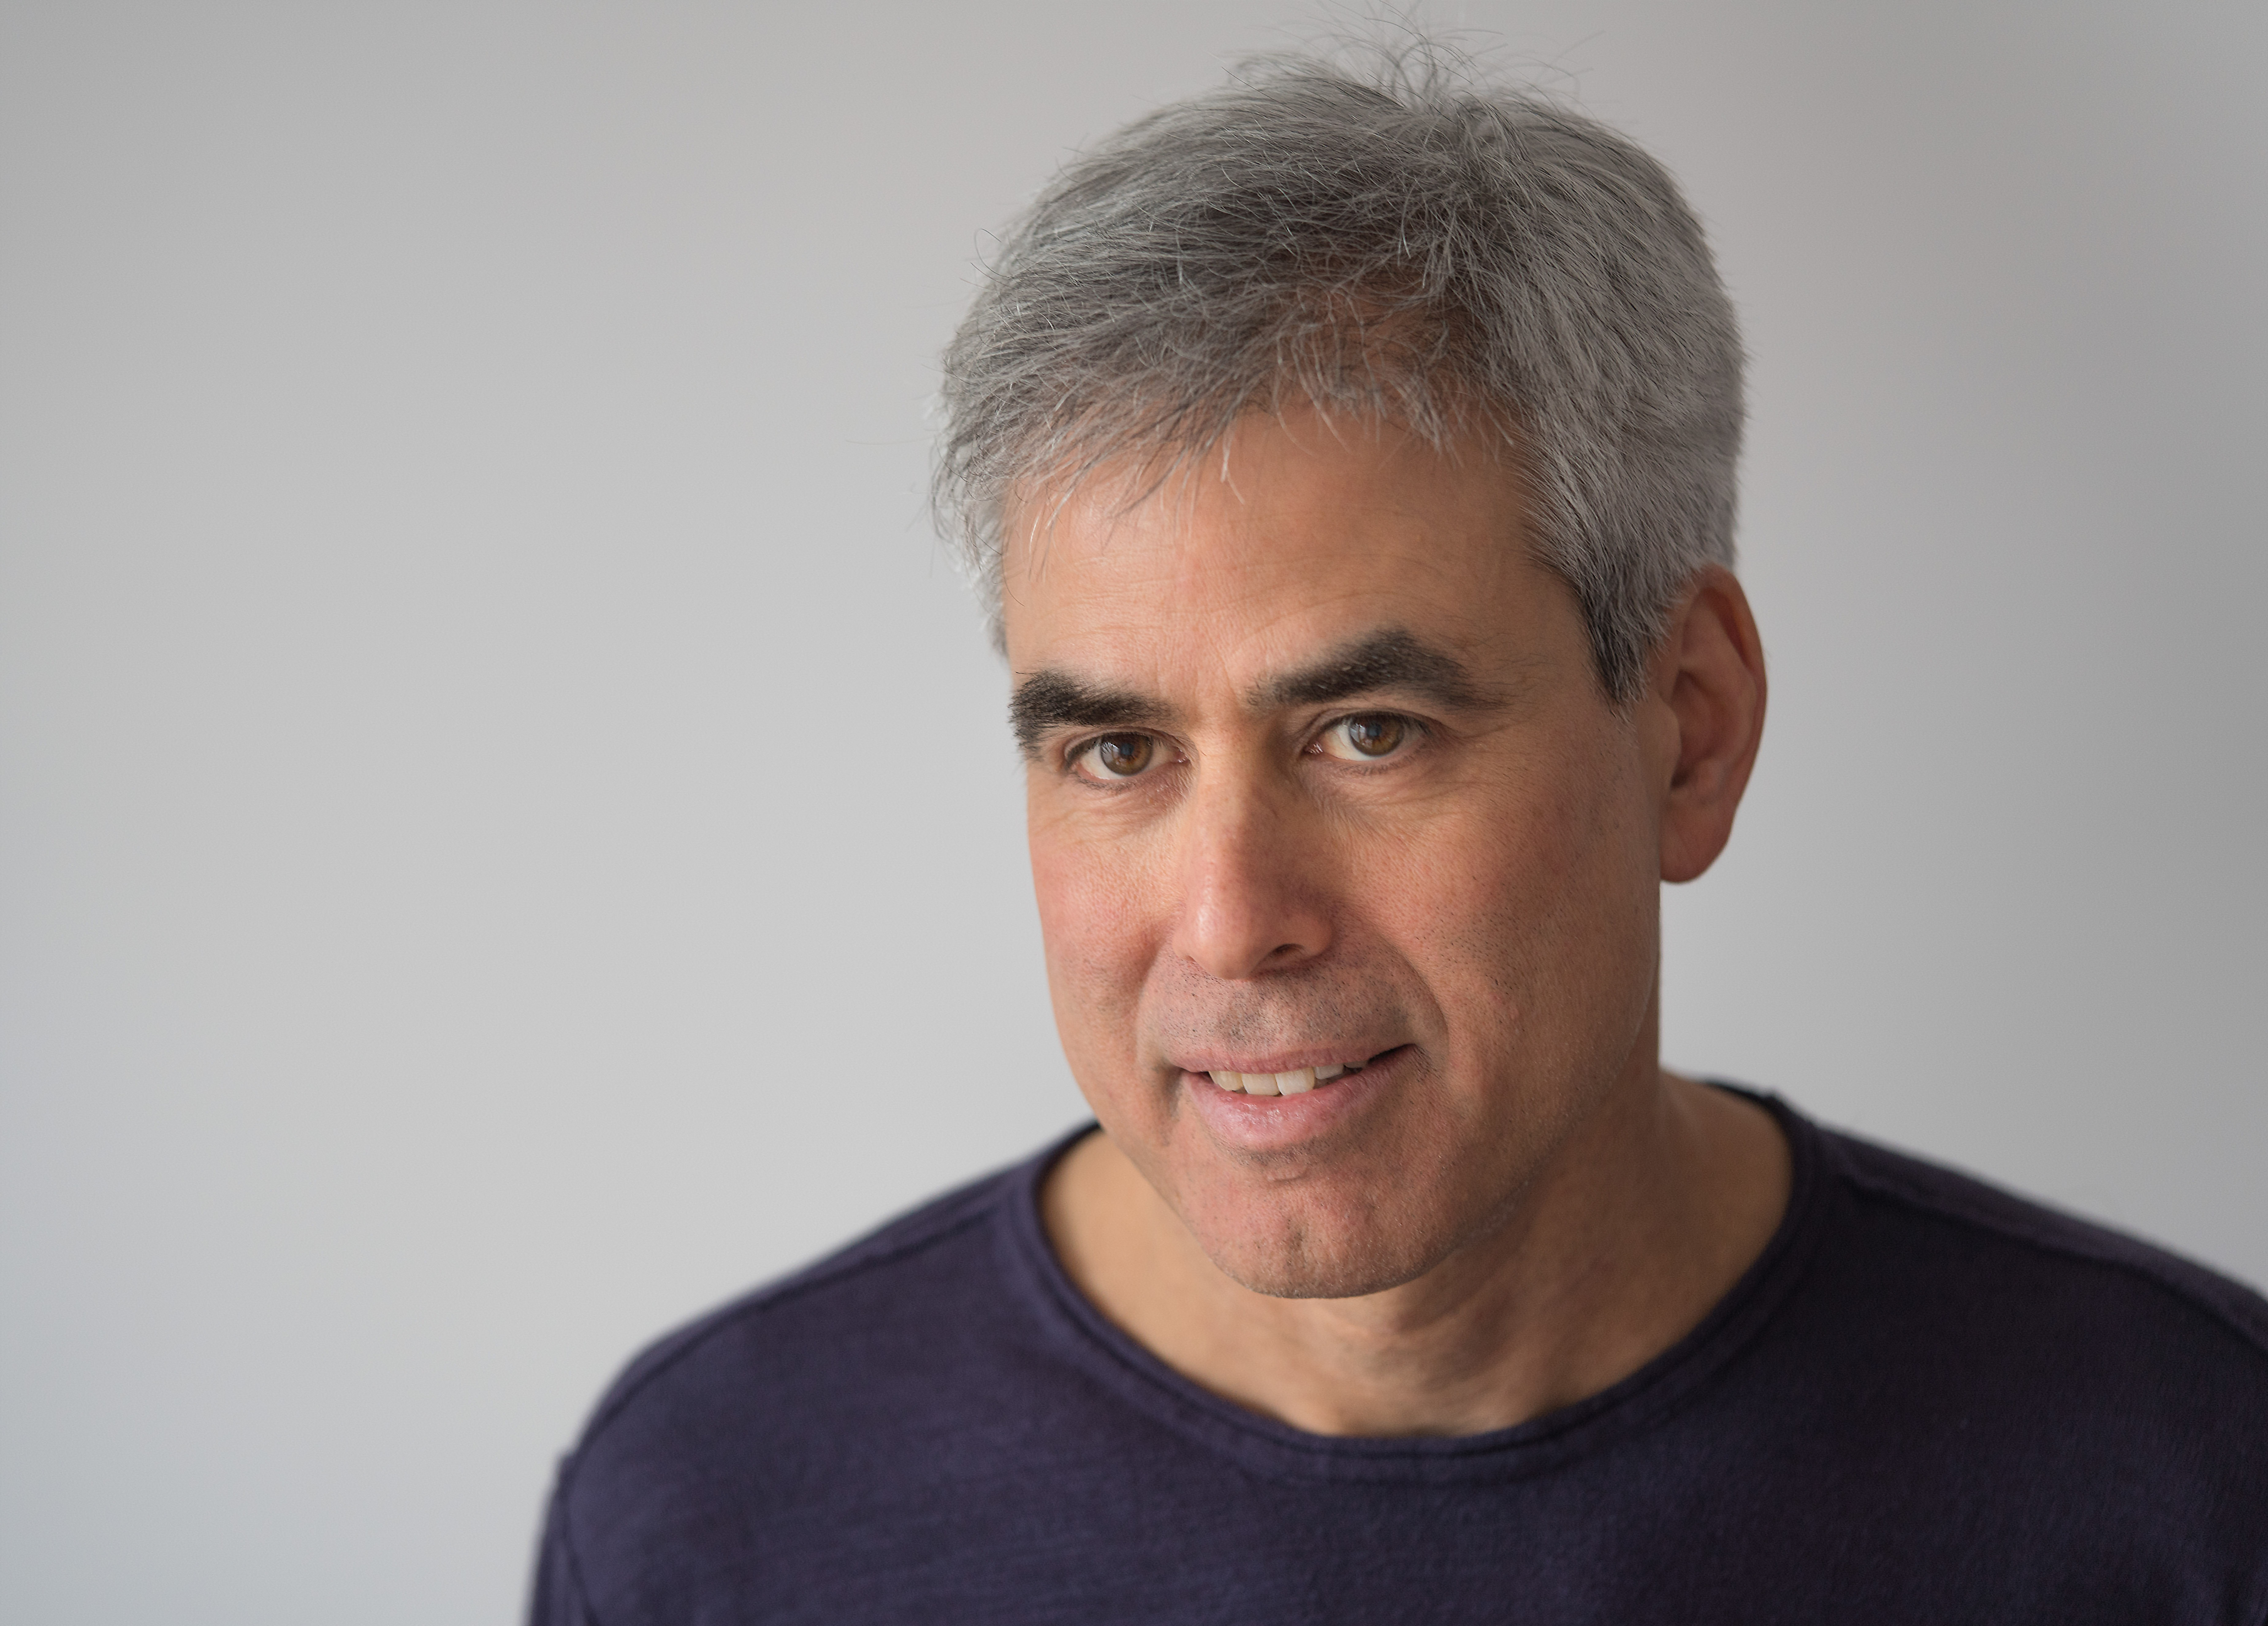 In fact, he's betting we could do with a little extra ruffling Jonathan Haidt